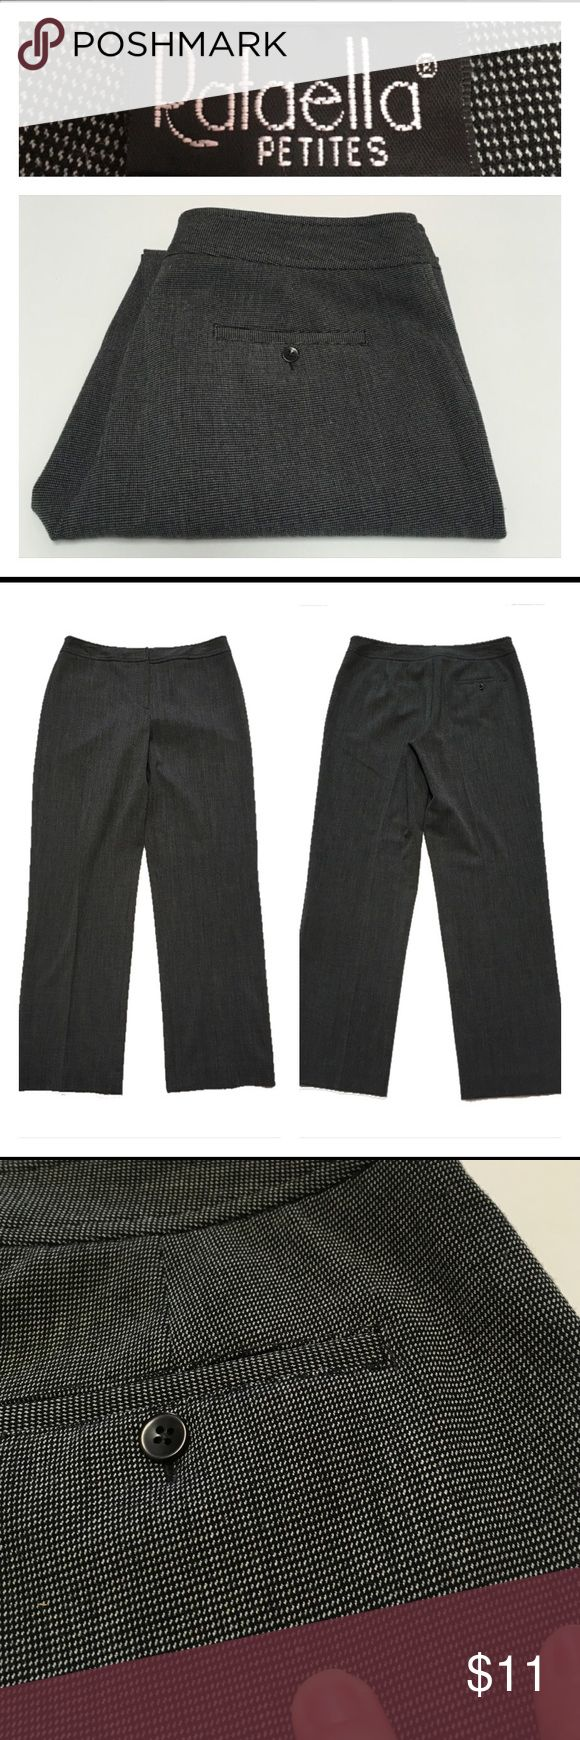 "RAFAELLA Petite Dress Pants Twill Size 8 Worn about 10 times. Seem to sun true to size. I wear a curvy in these style pants. So these fit me but are too clingy at my curvy parts ""thighs"". These are slightly tapered. Tail of a black and grey color. Two small bumps in fabric where my finger is pointing. Waist 33"" inches. Rise 10 inches. Inseam 30.5"" inches. Rafaella Pants Trousers"